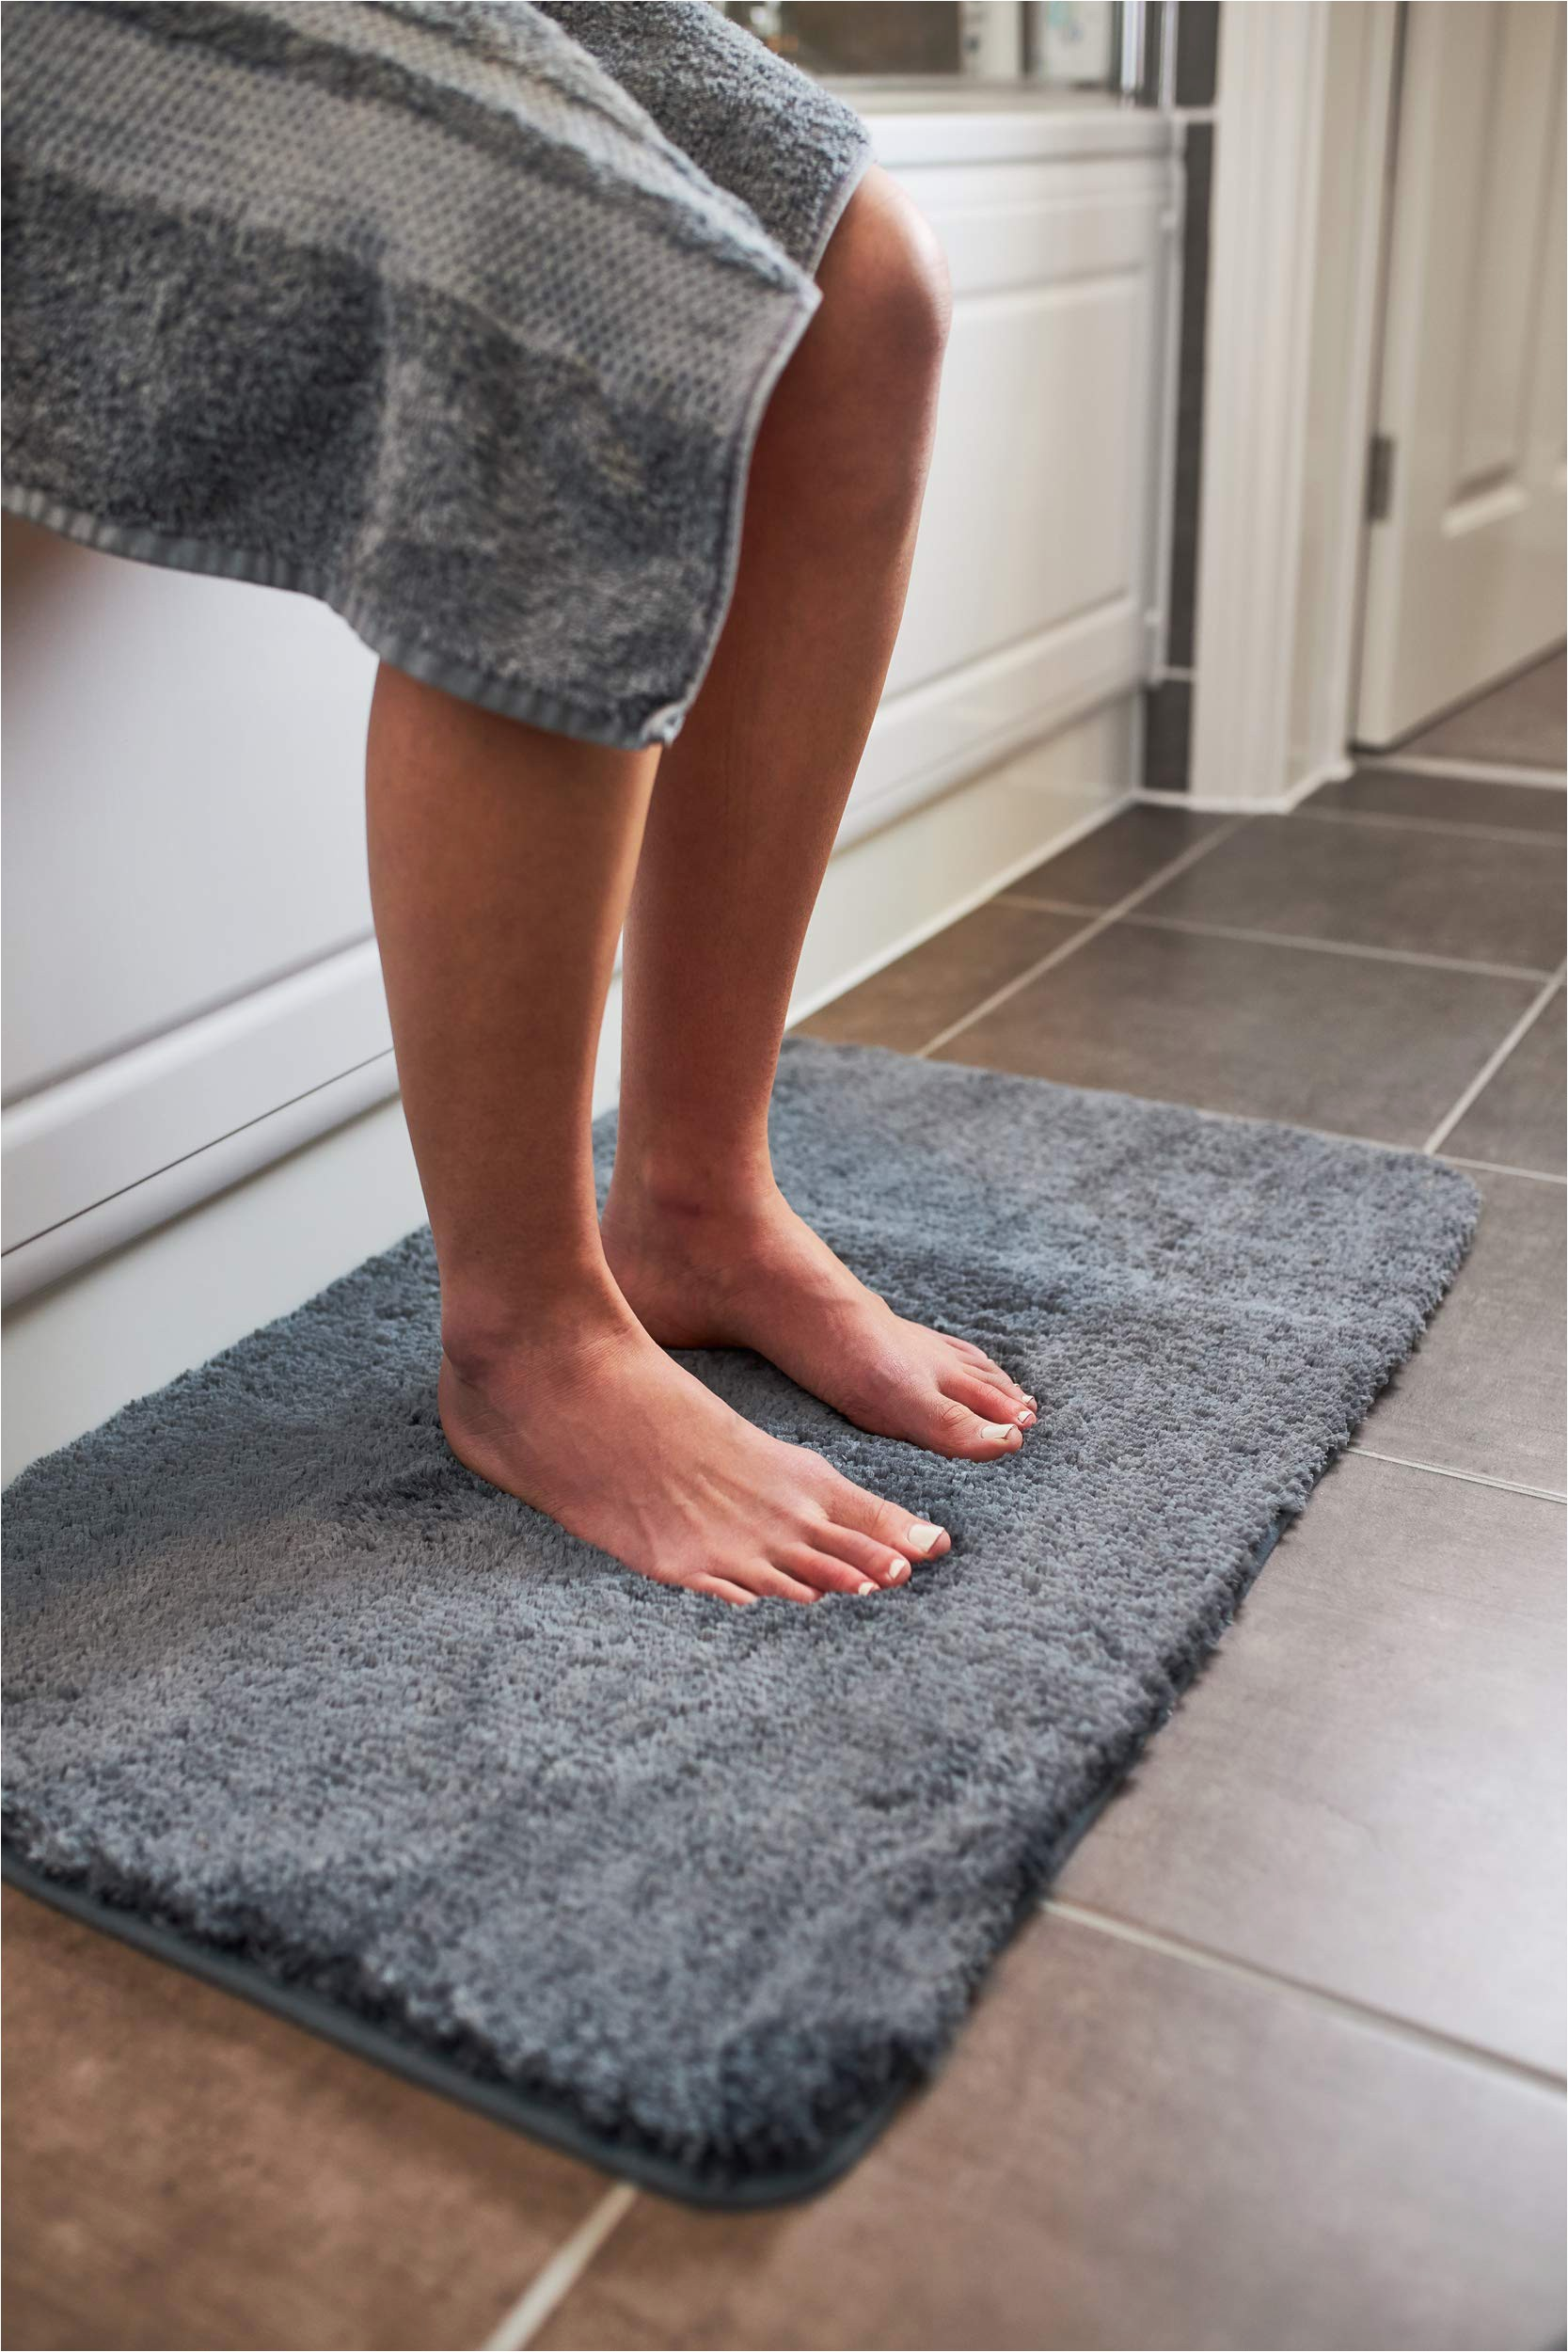 Luxury Bath Mats and Rugs Luxury Grey Bath Mat Microfiber Non Slip Bath Rug with Super soft Absorbent Dry Fast Design for Bath and Shower